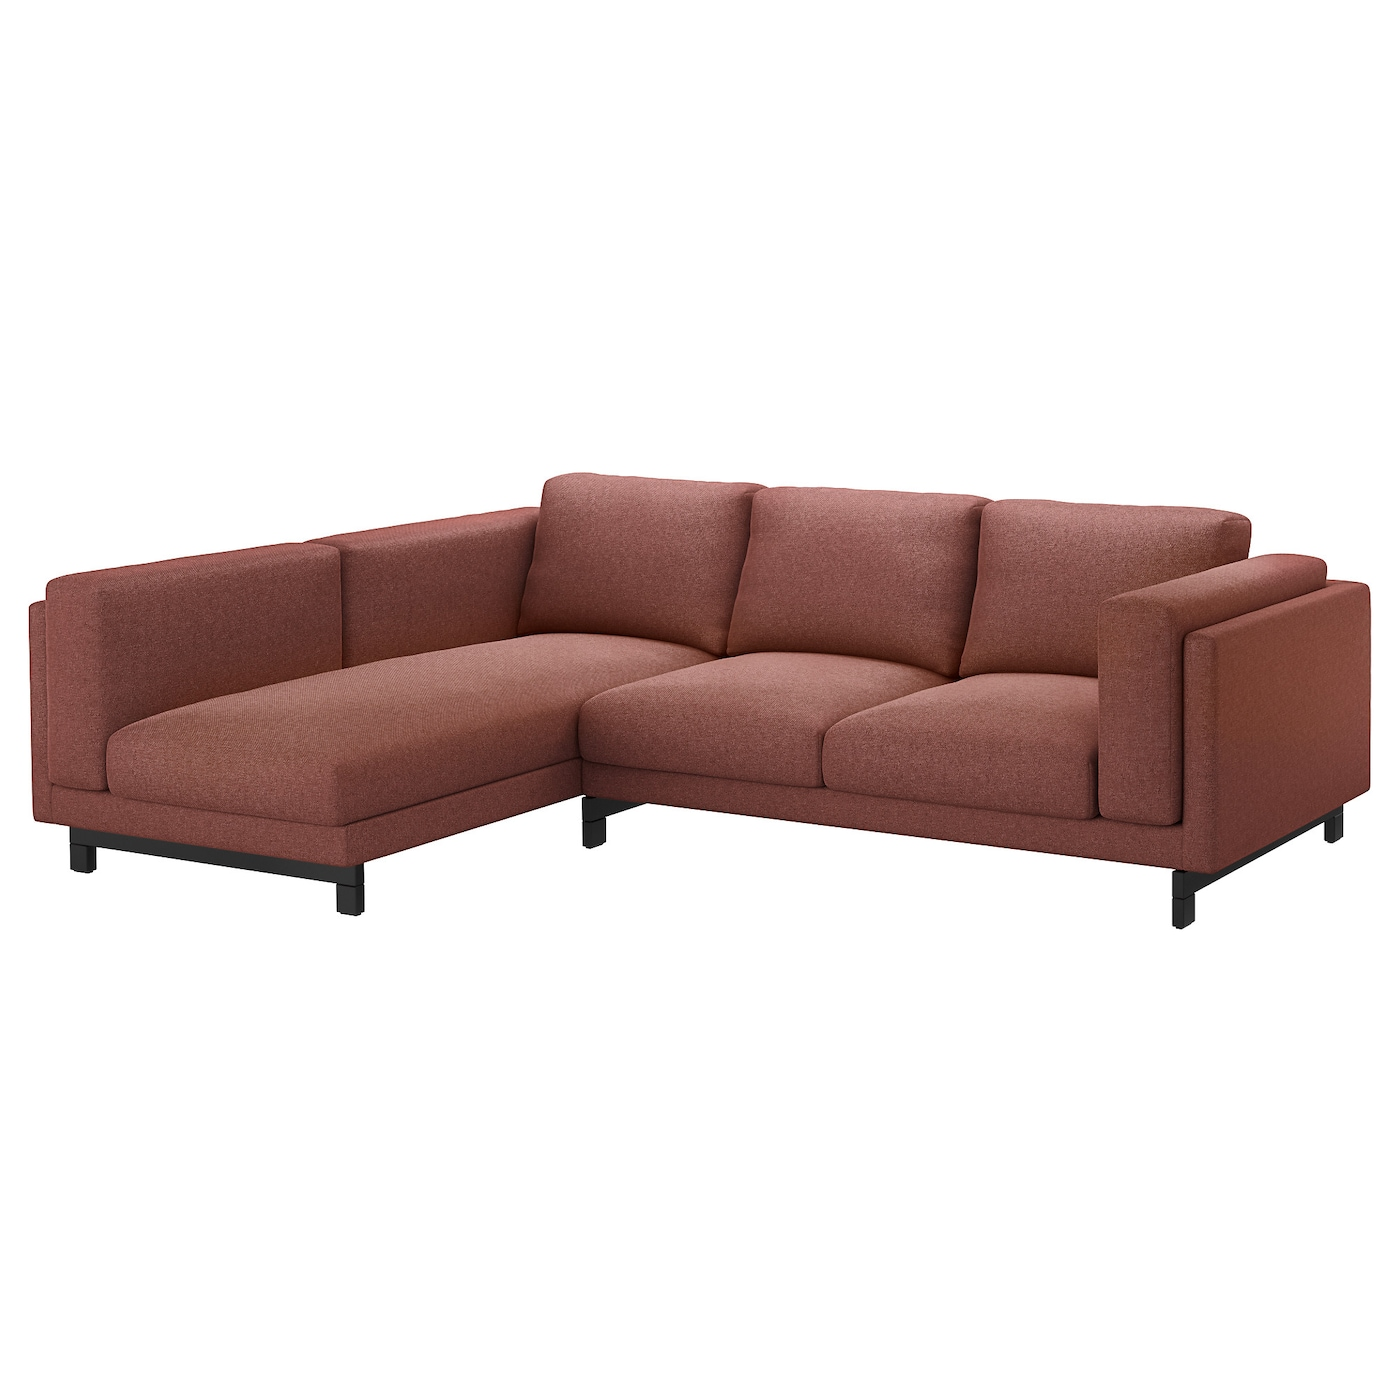 Nockeby two seat sofa w chaise longue left tallmyra rust - Chaise longue exterieur ikea ...